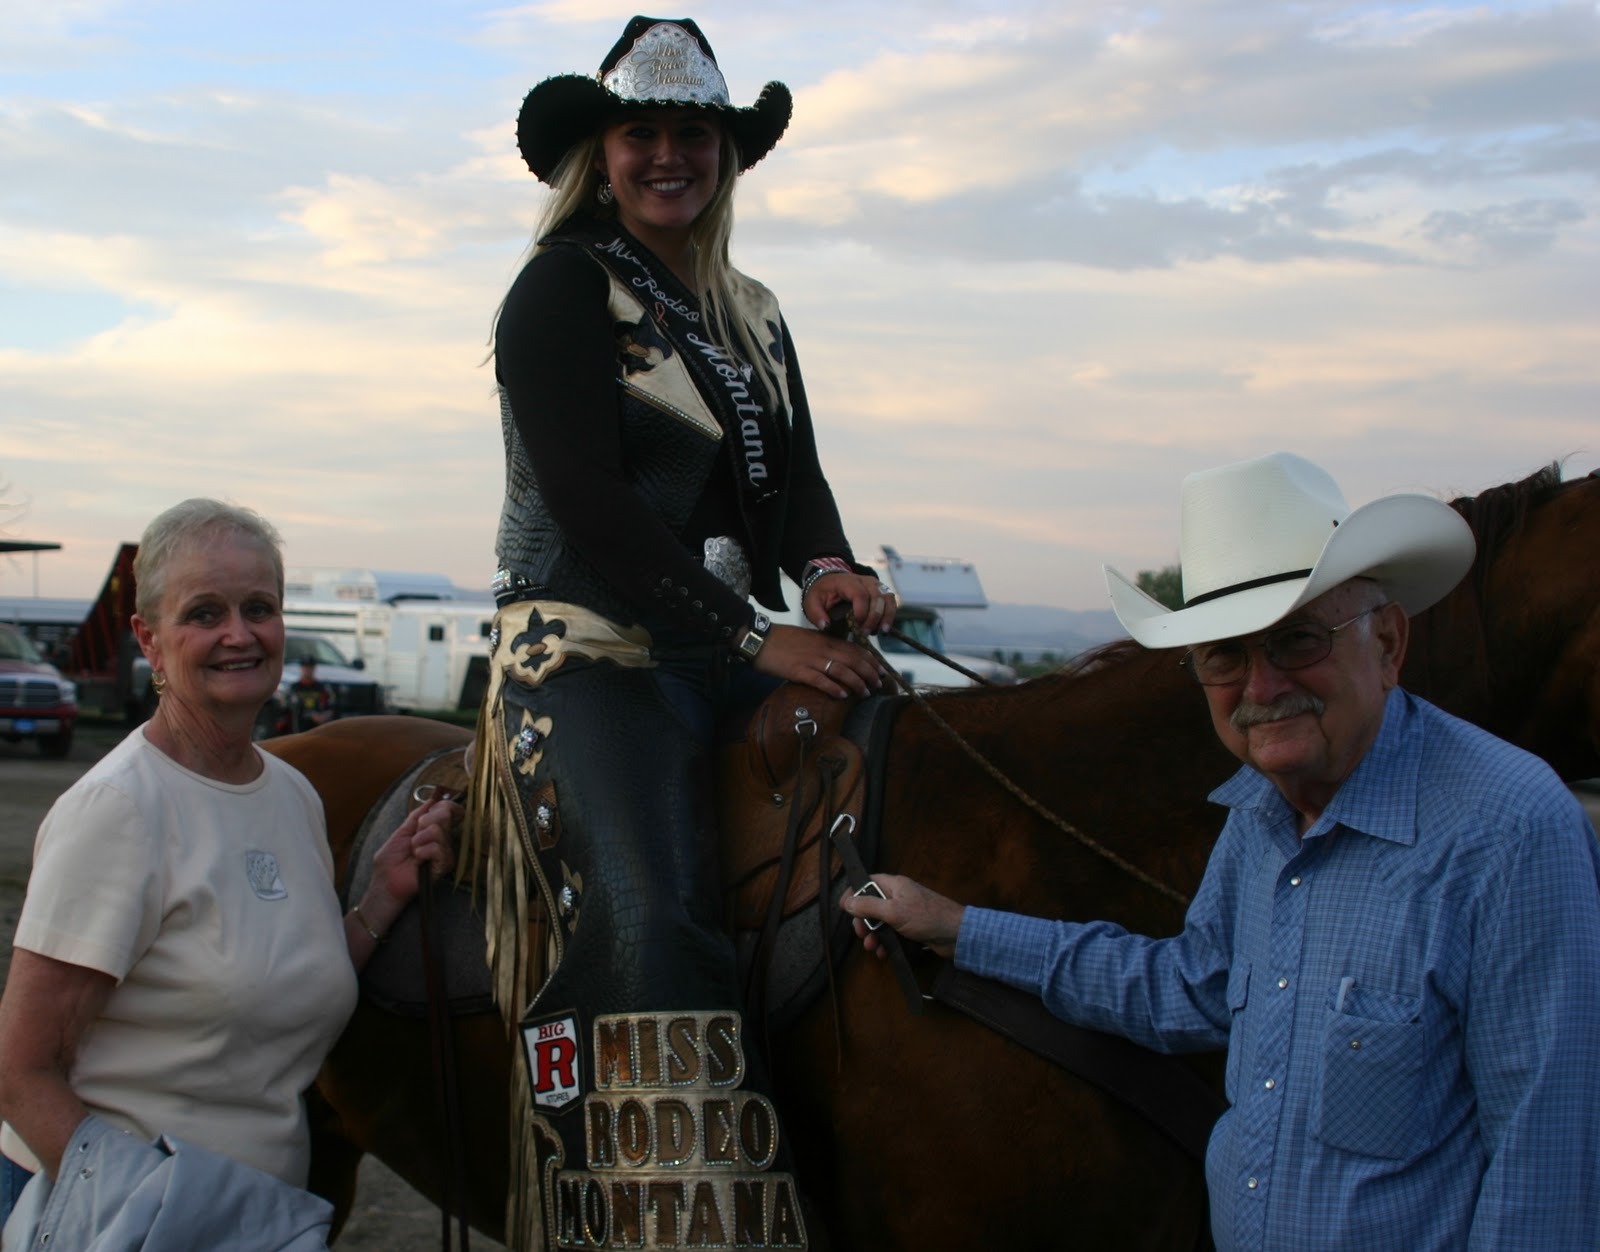 My Year As Miss Rodeo Montana 2011 Last Chance